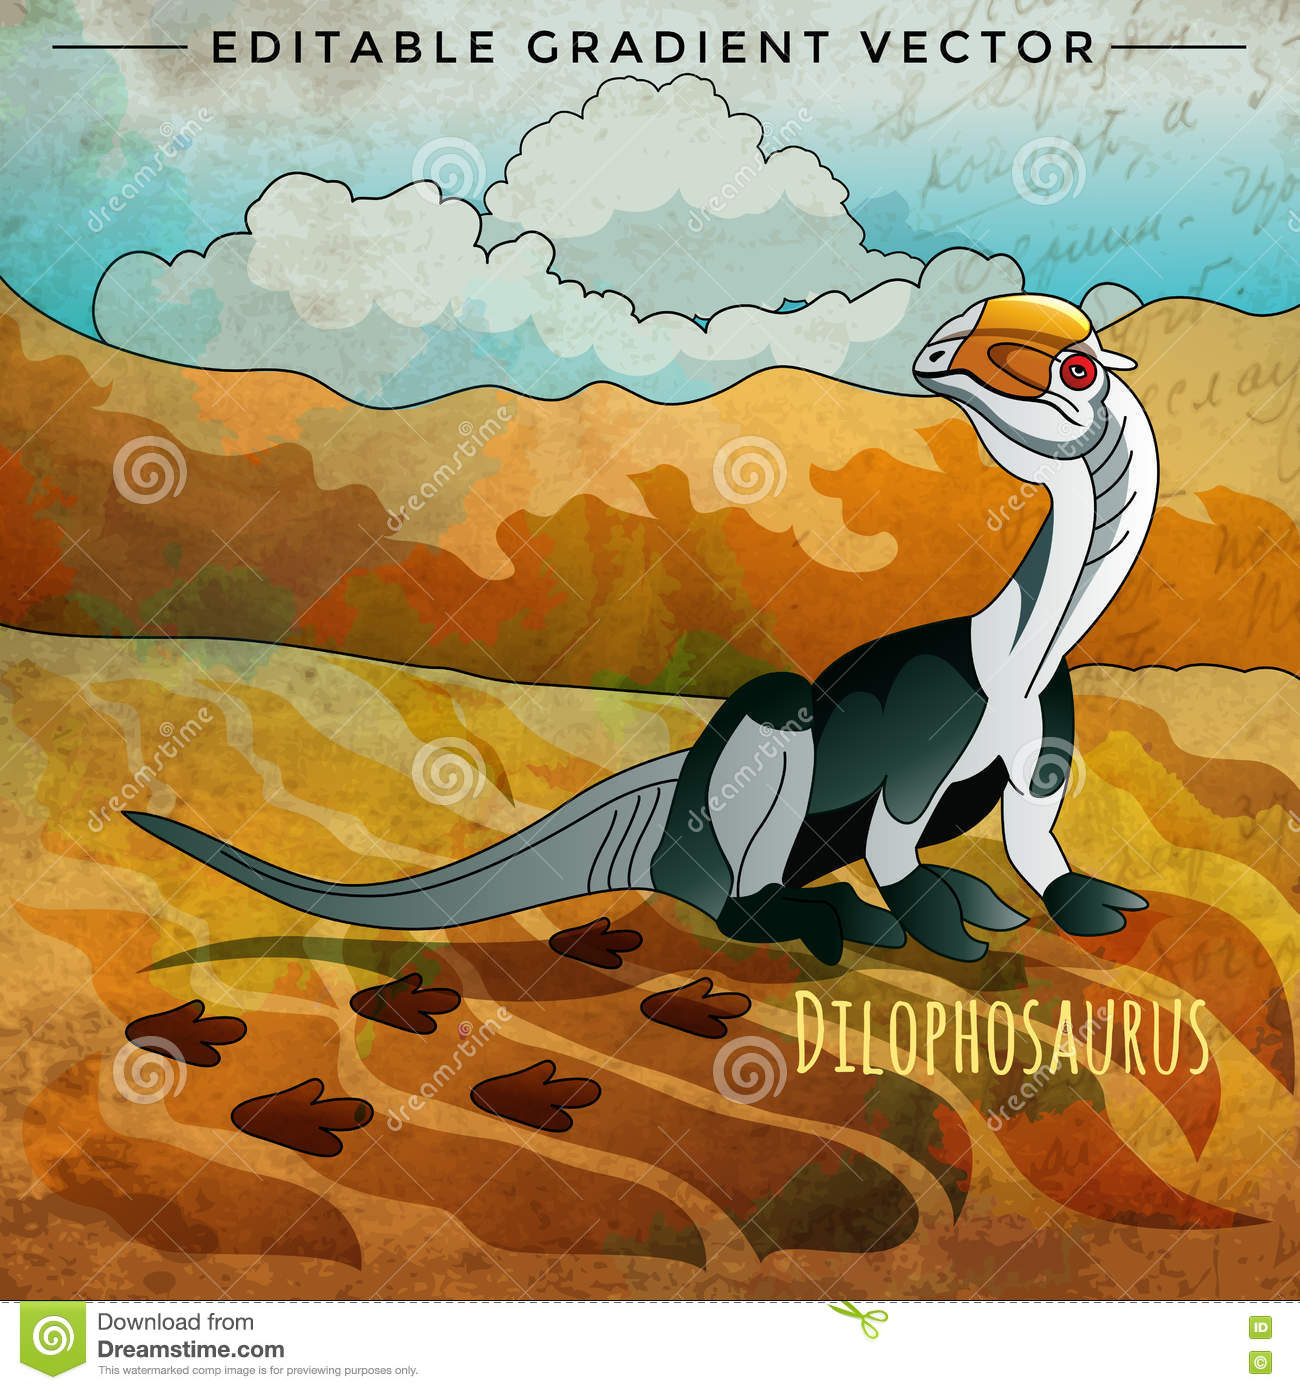 Dinosaur In The Habitat Vector Illustration Of Dilophosaur Stock